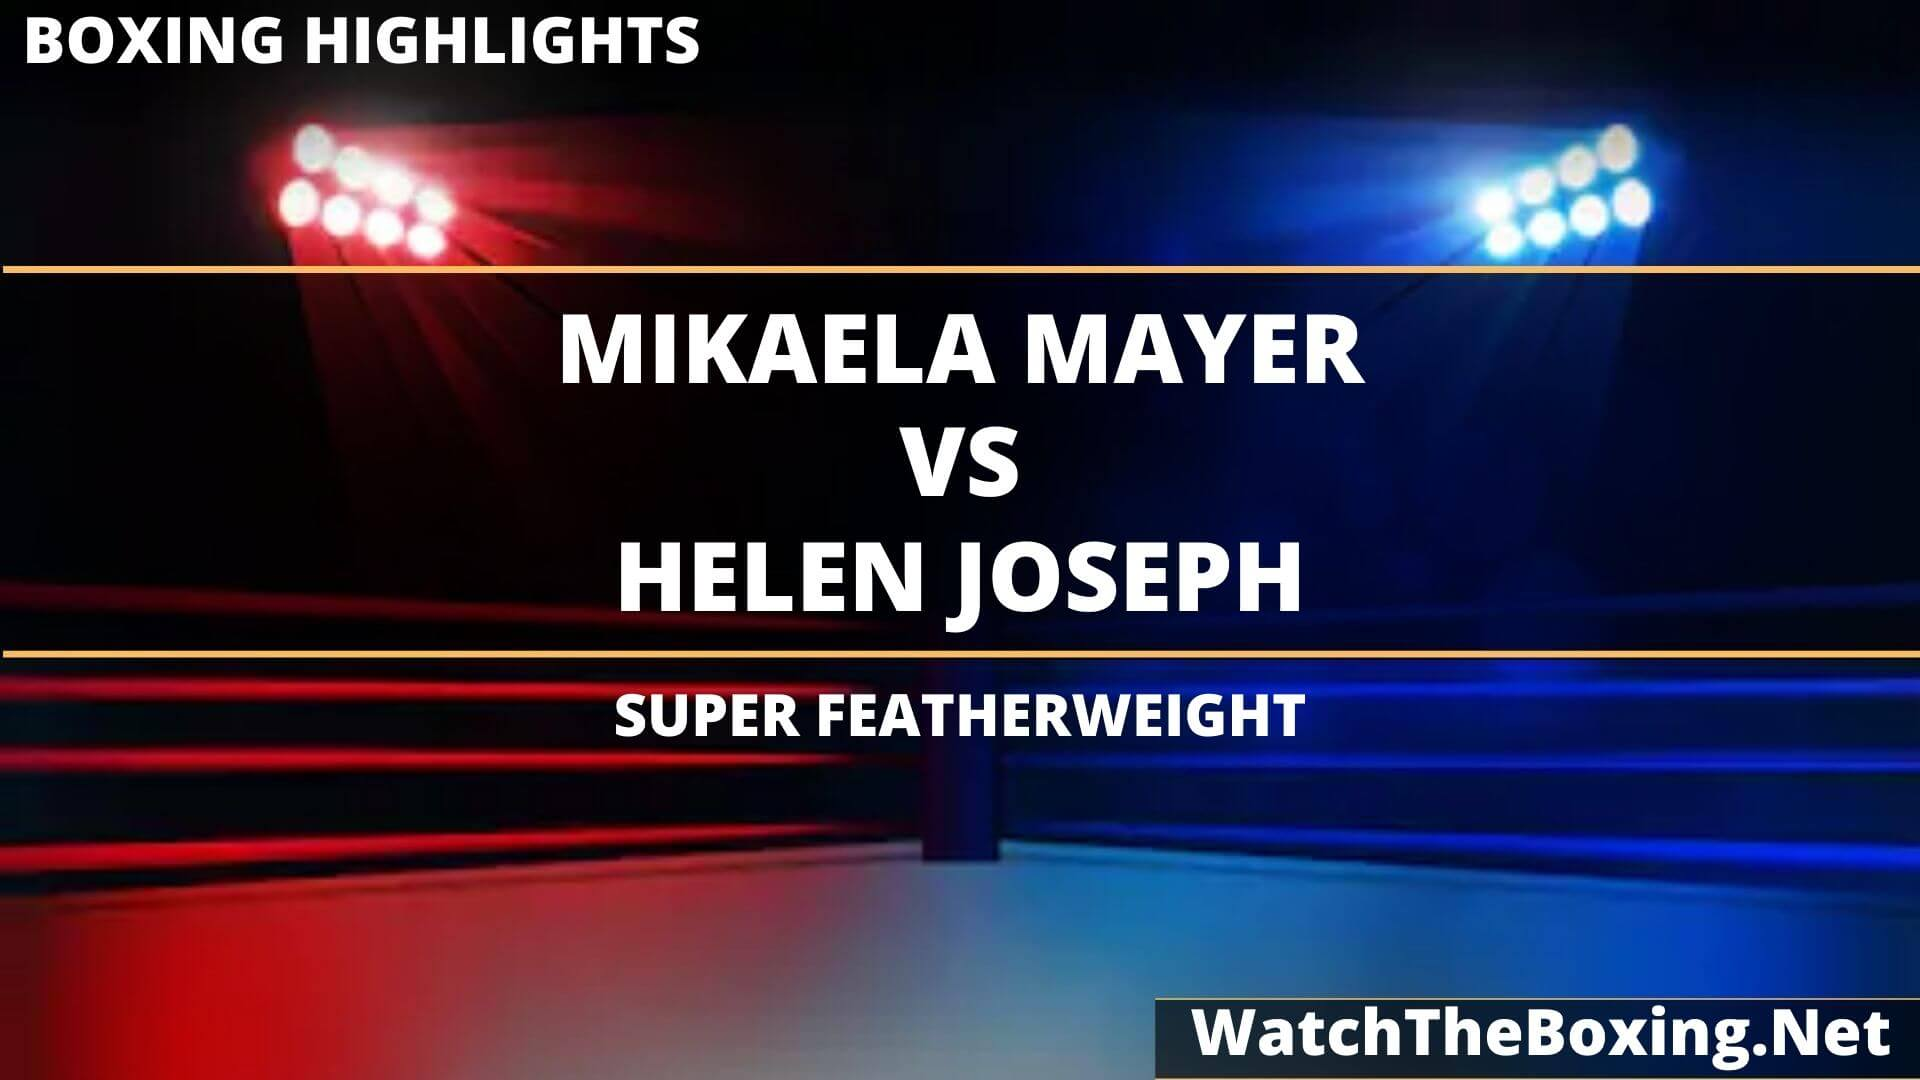 Mikaela Mayer Vs Helen Joseph Highlights 2020 Super Featherweight